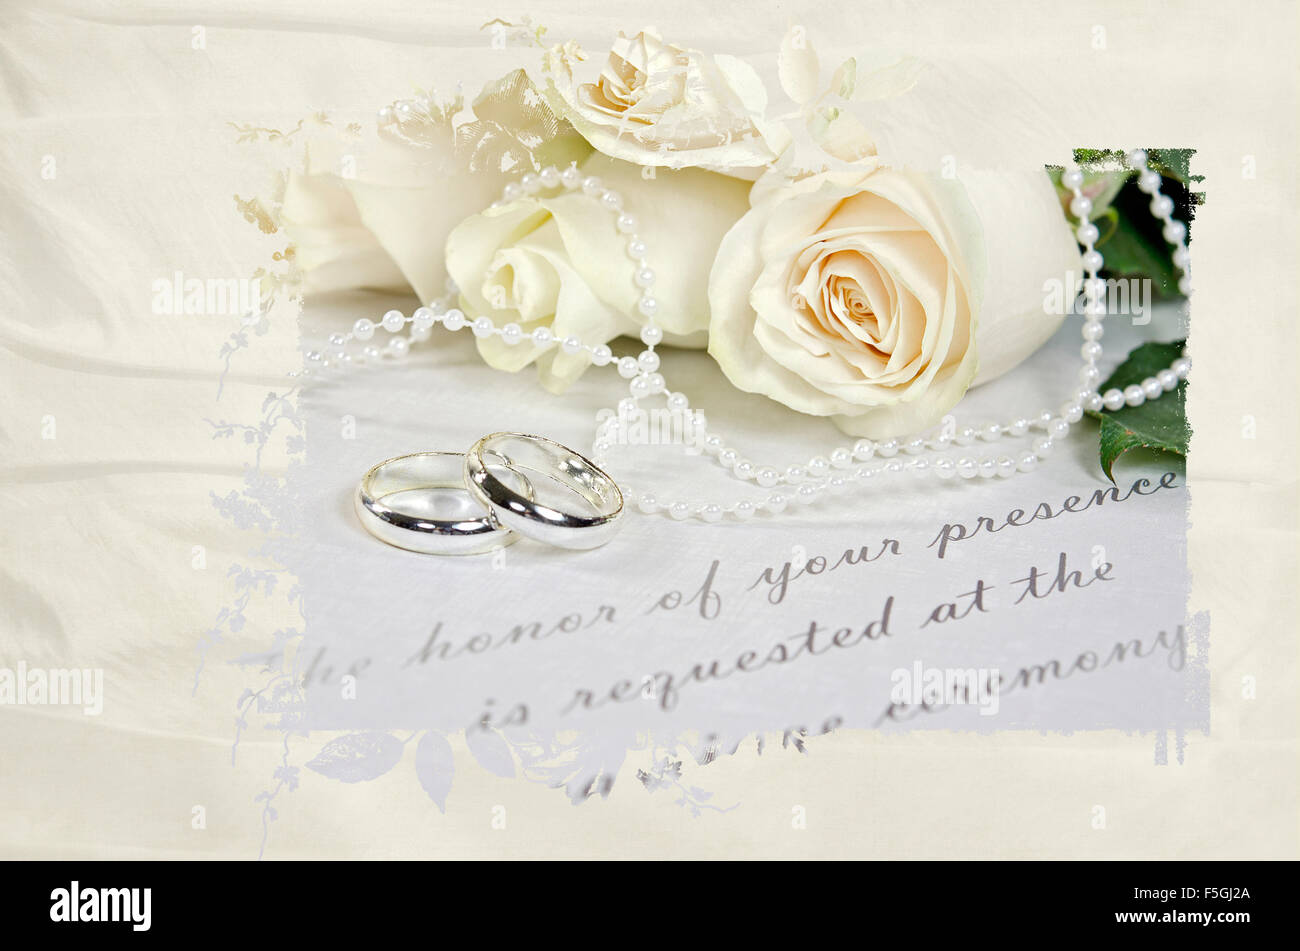 Stock Photo  Wedding Rings And Rose Bouquet With Pearls On Formal Wedding  Invitation In Masked Frame